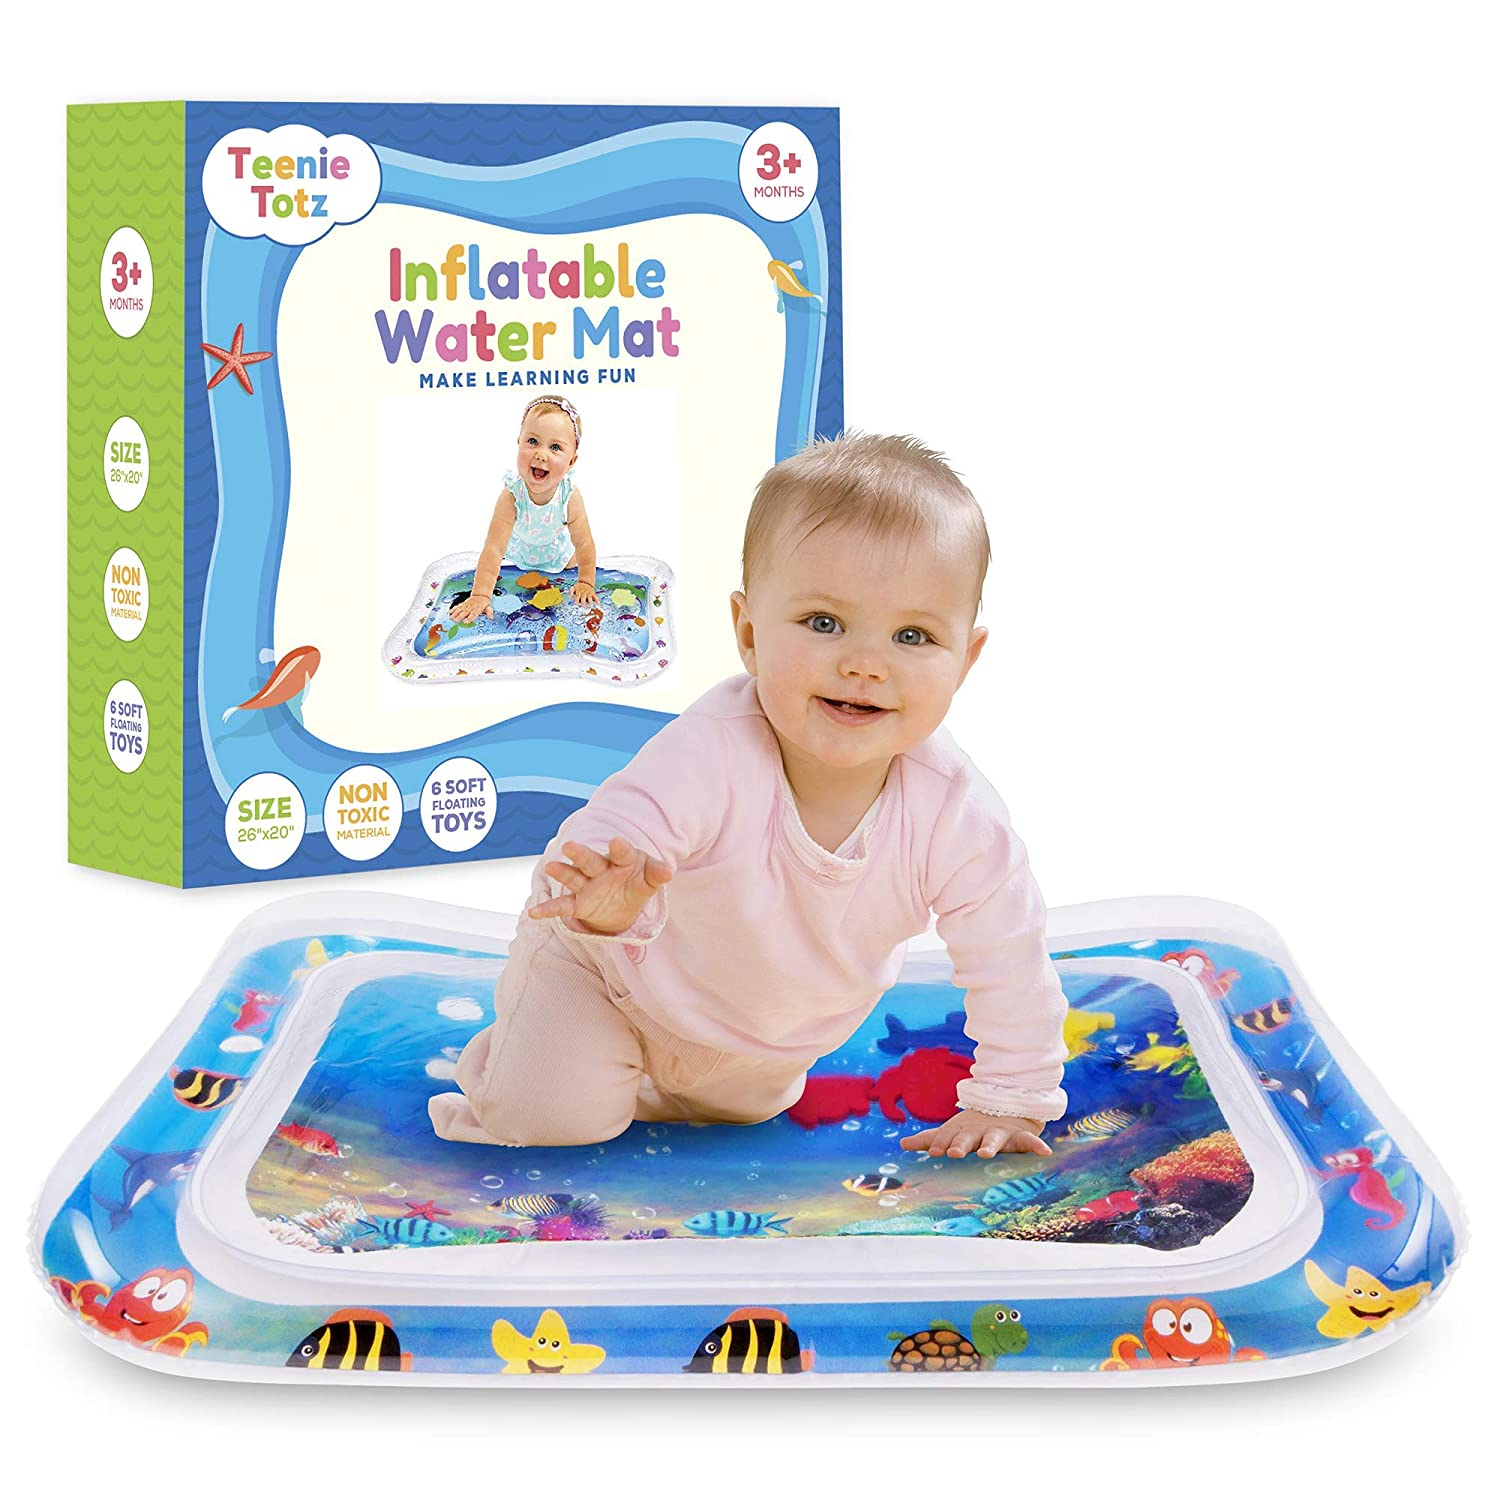 Teenie Totz Inflatable Tummy Time Water Mat - Premium Baby Water Mat for Infants Fun Play Activity Centre for Sensory Baby Development - Perfect Baby Water Play Mat with Fun Toys